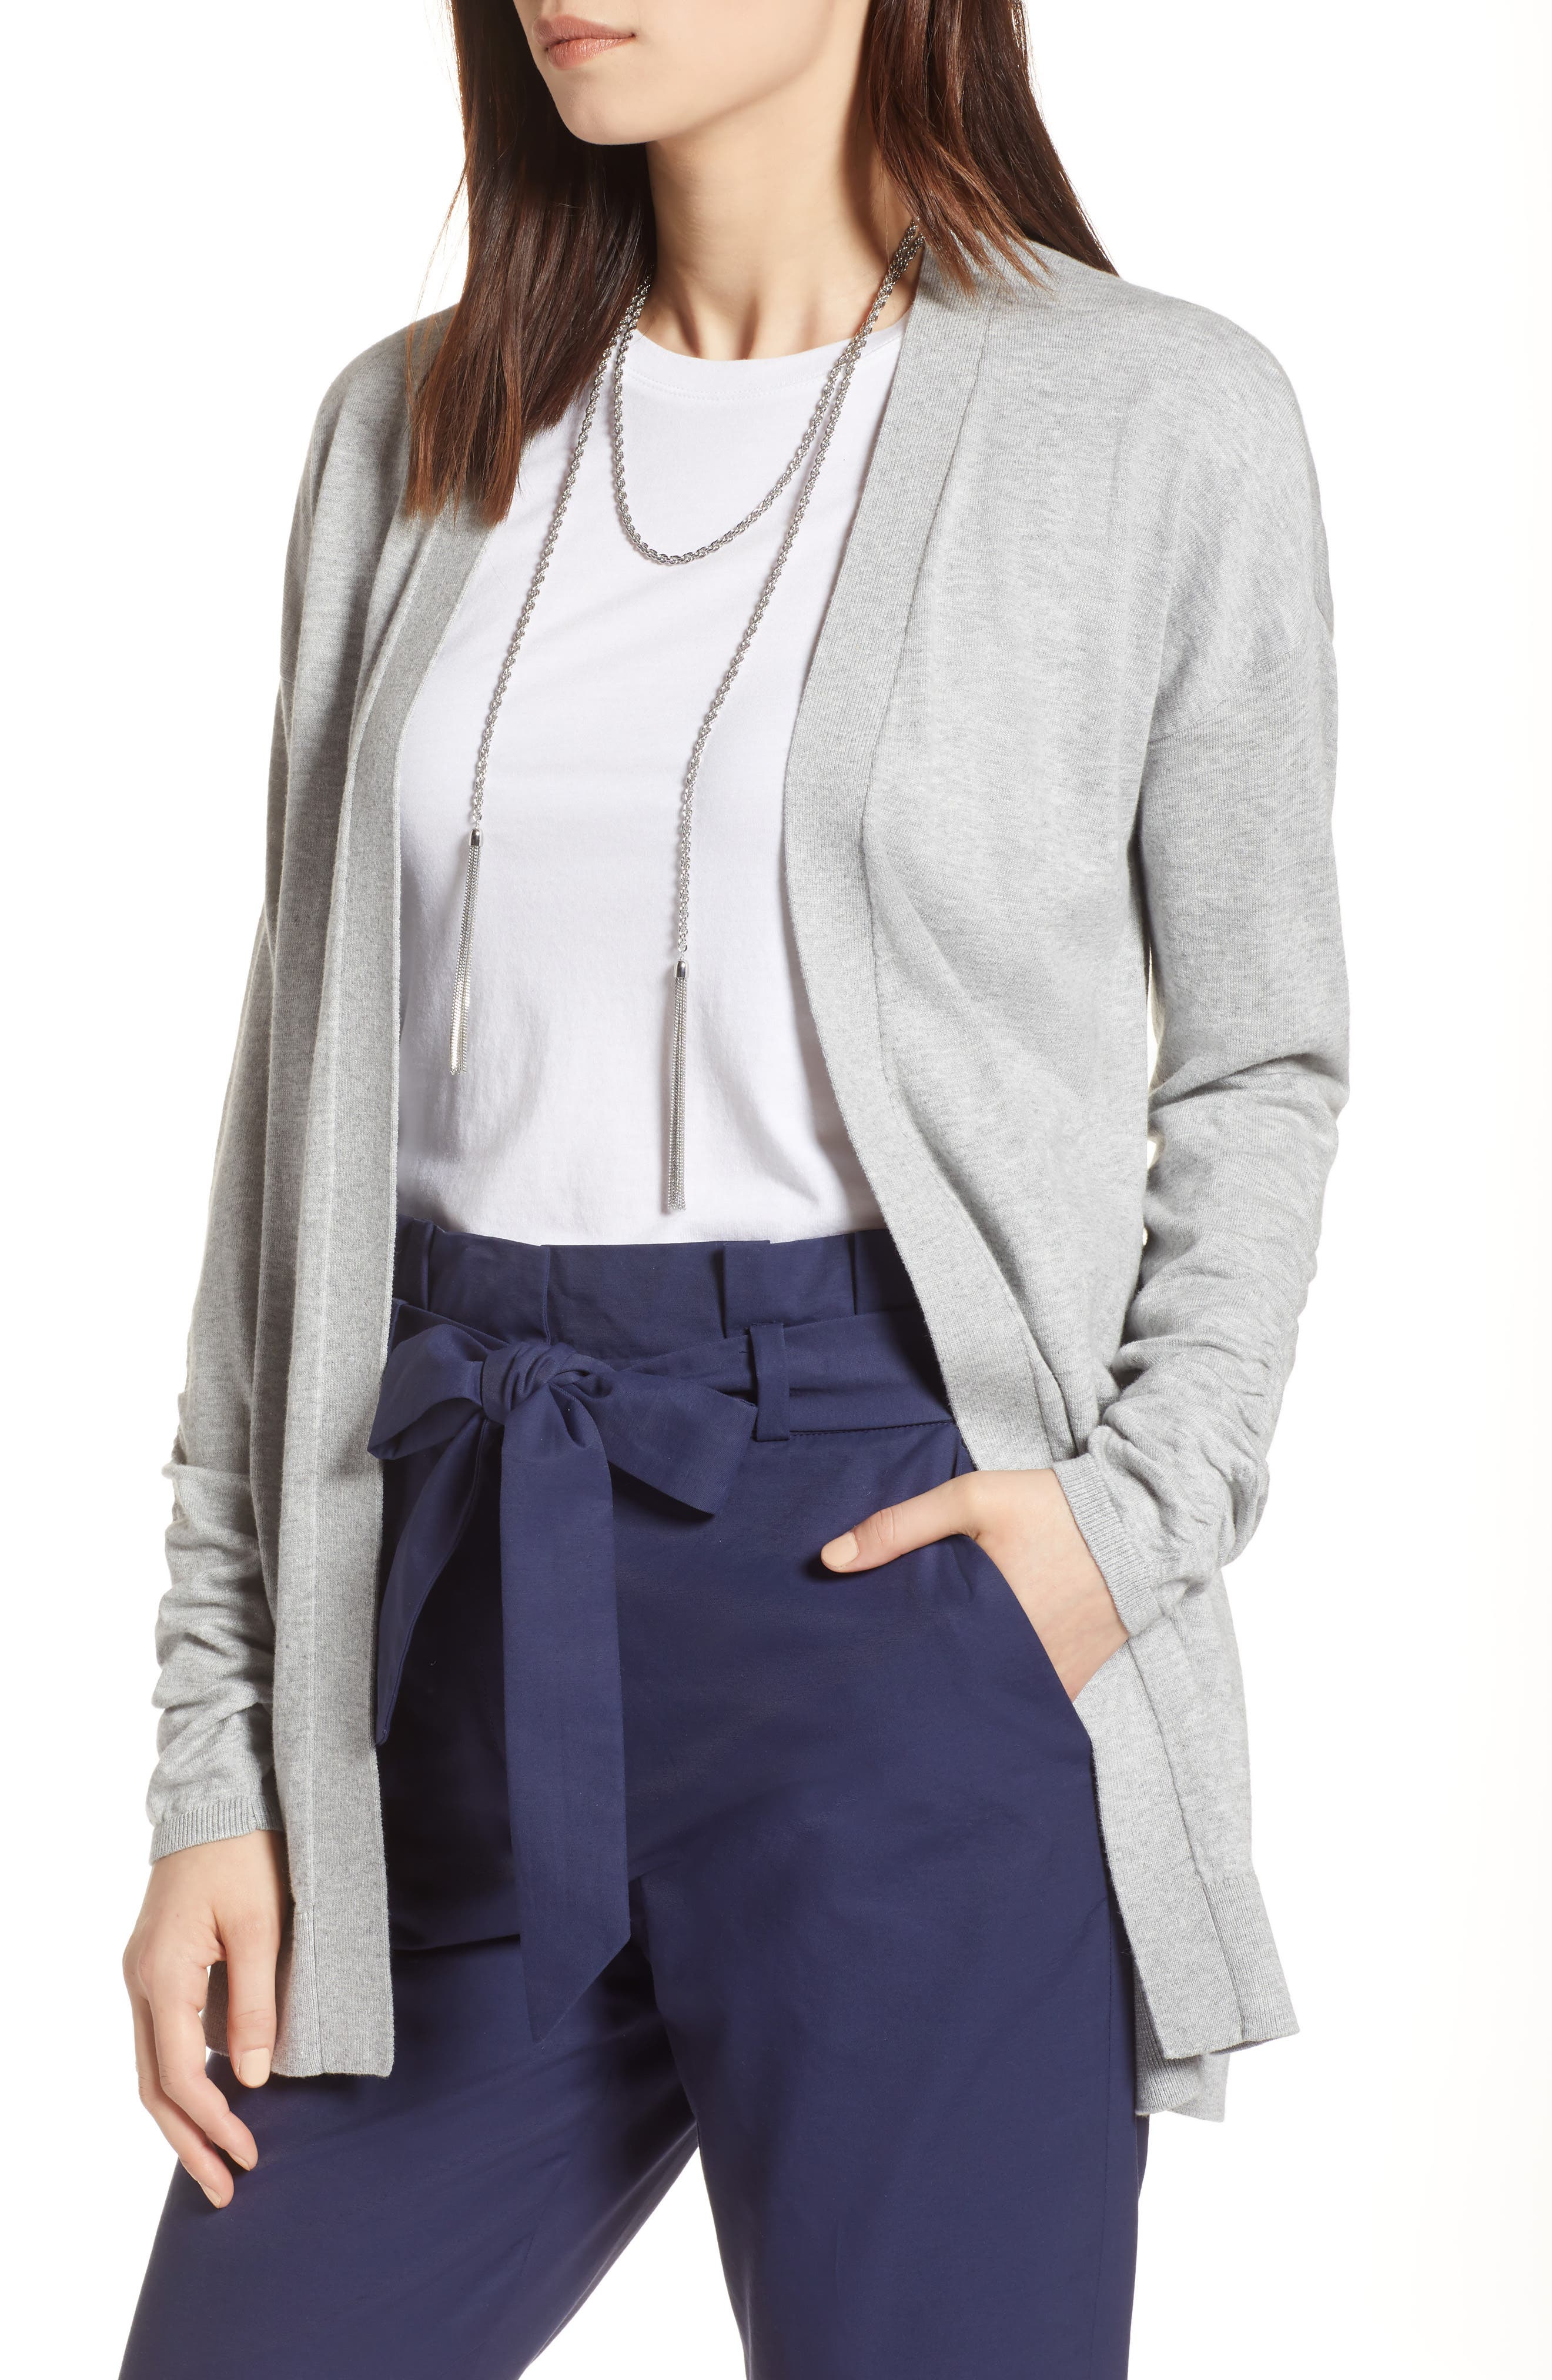 Ruched Sleeve Cardigan,                             Main thumbnail 1, color,                             Grey Heather